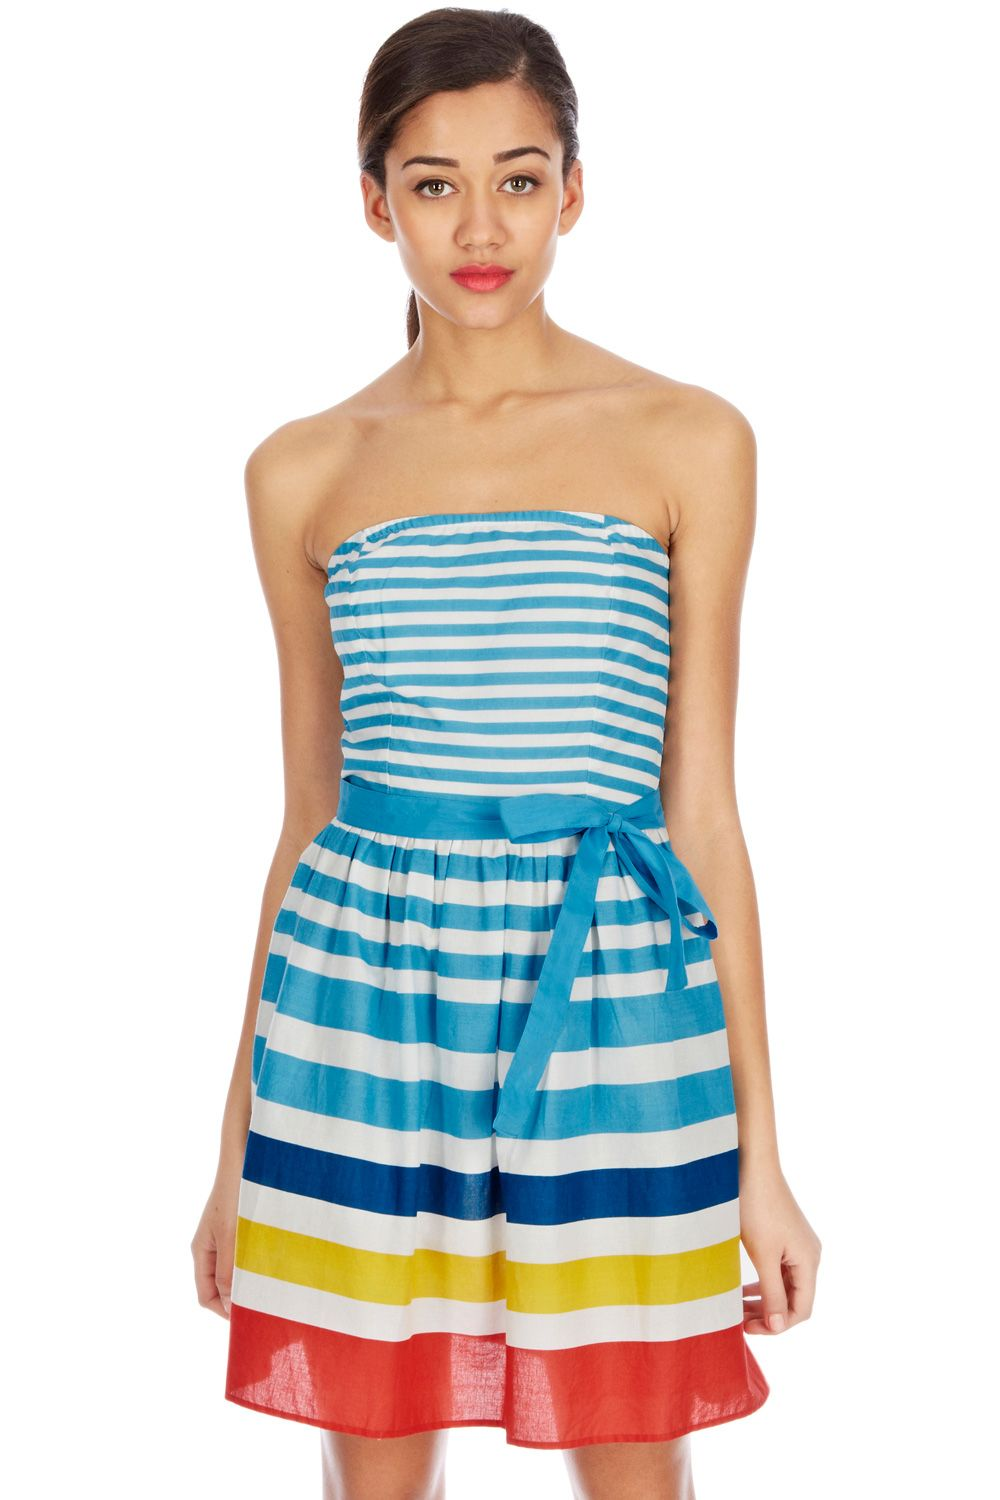 Stripe fit and flare sundress